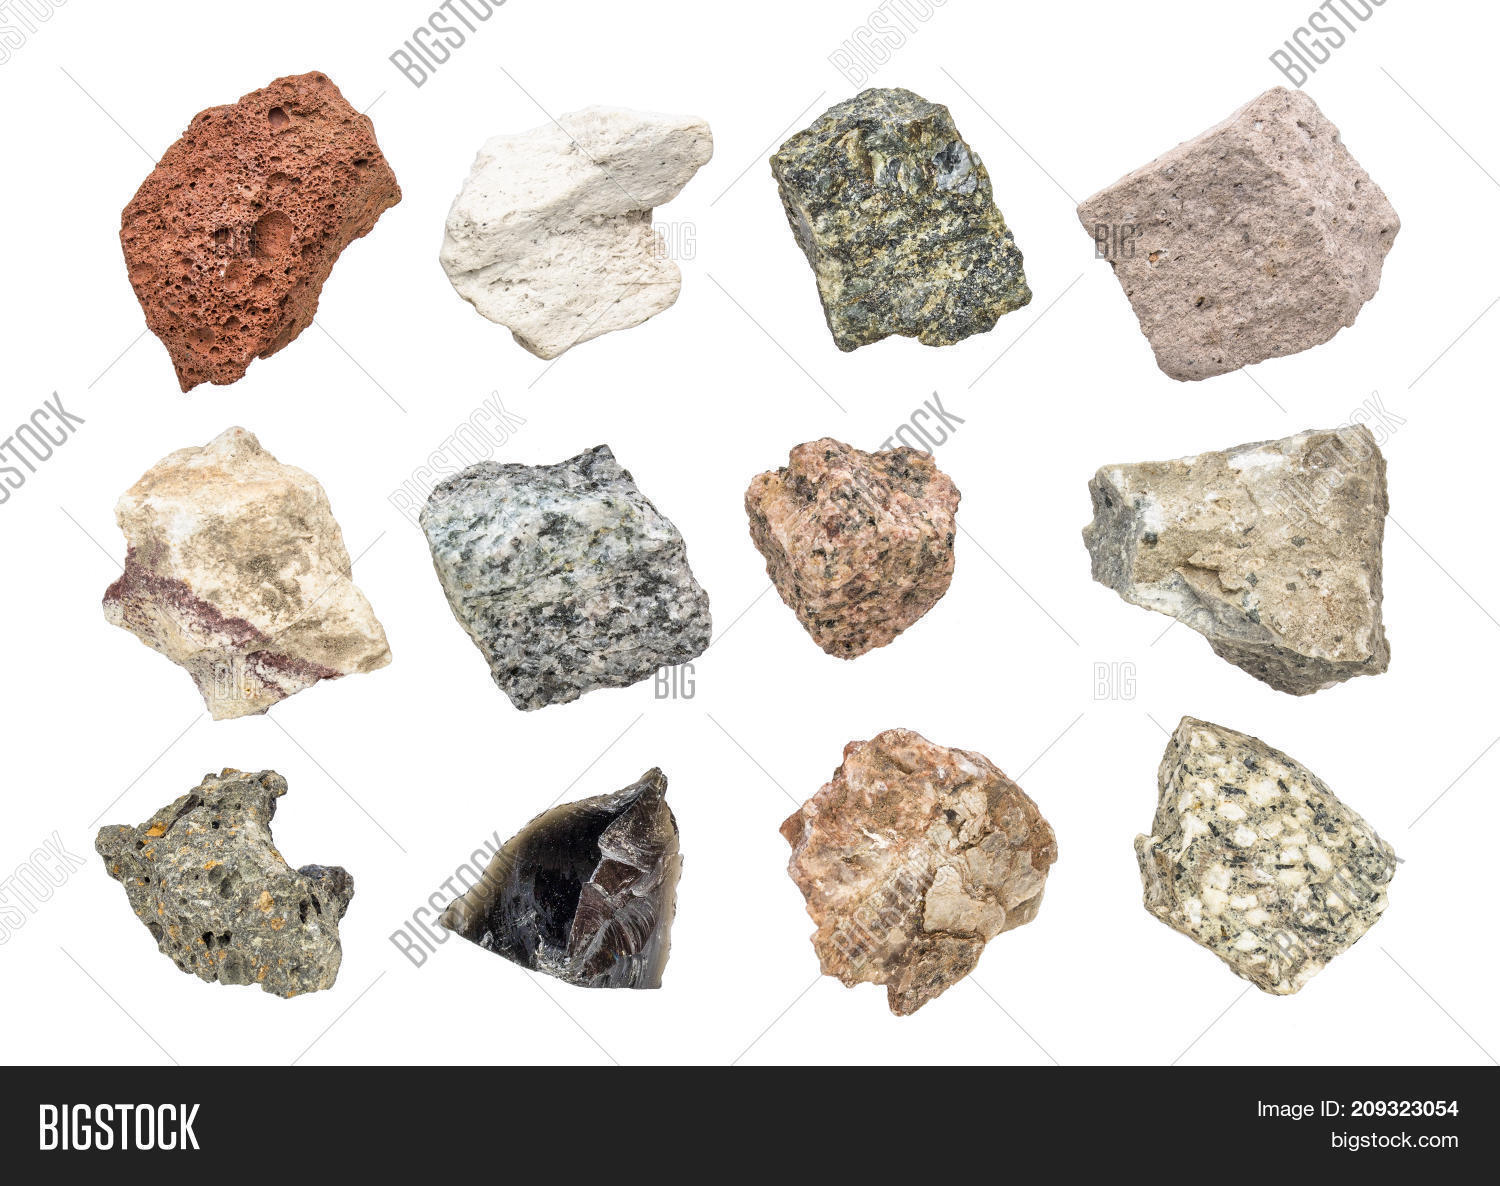 Isolated Igneous Rock Image Photo Free Trial Bigstock